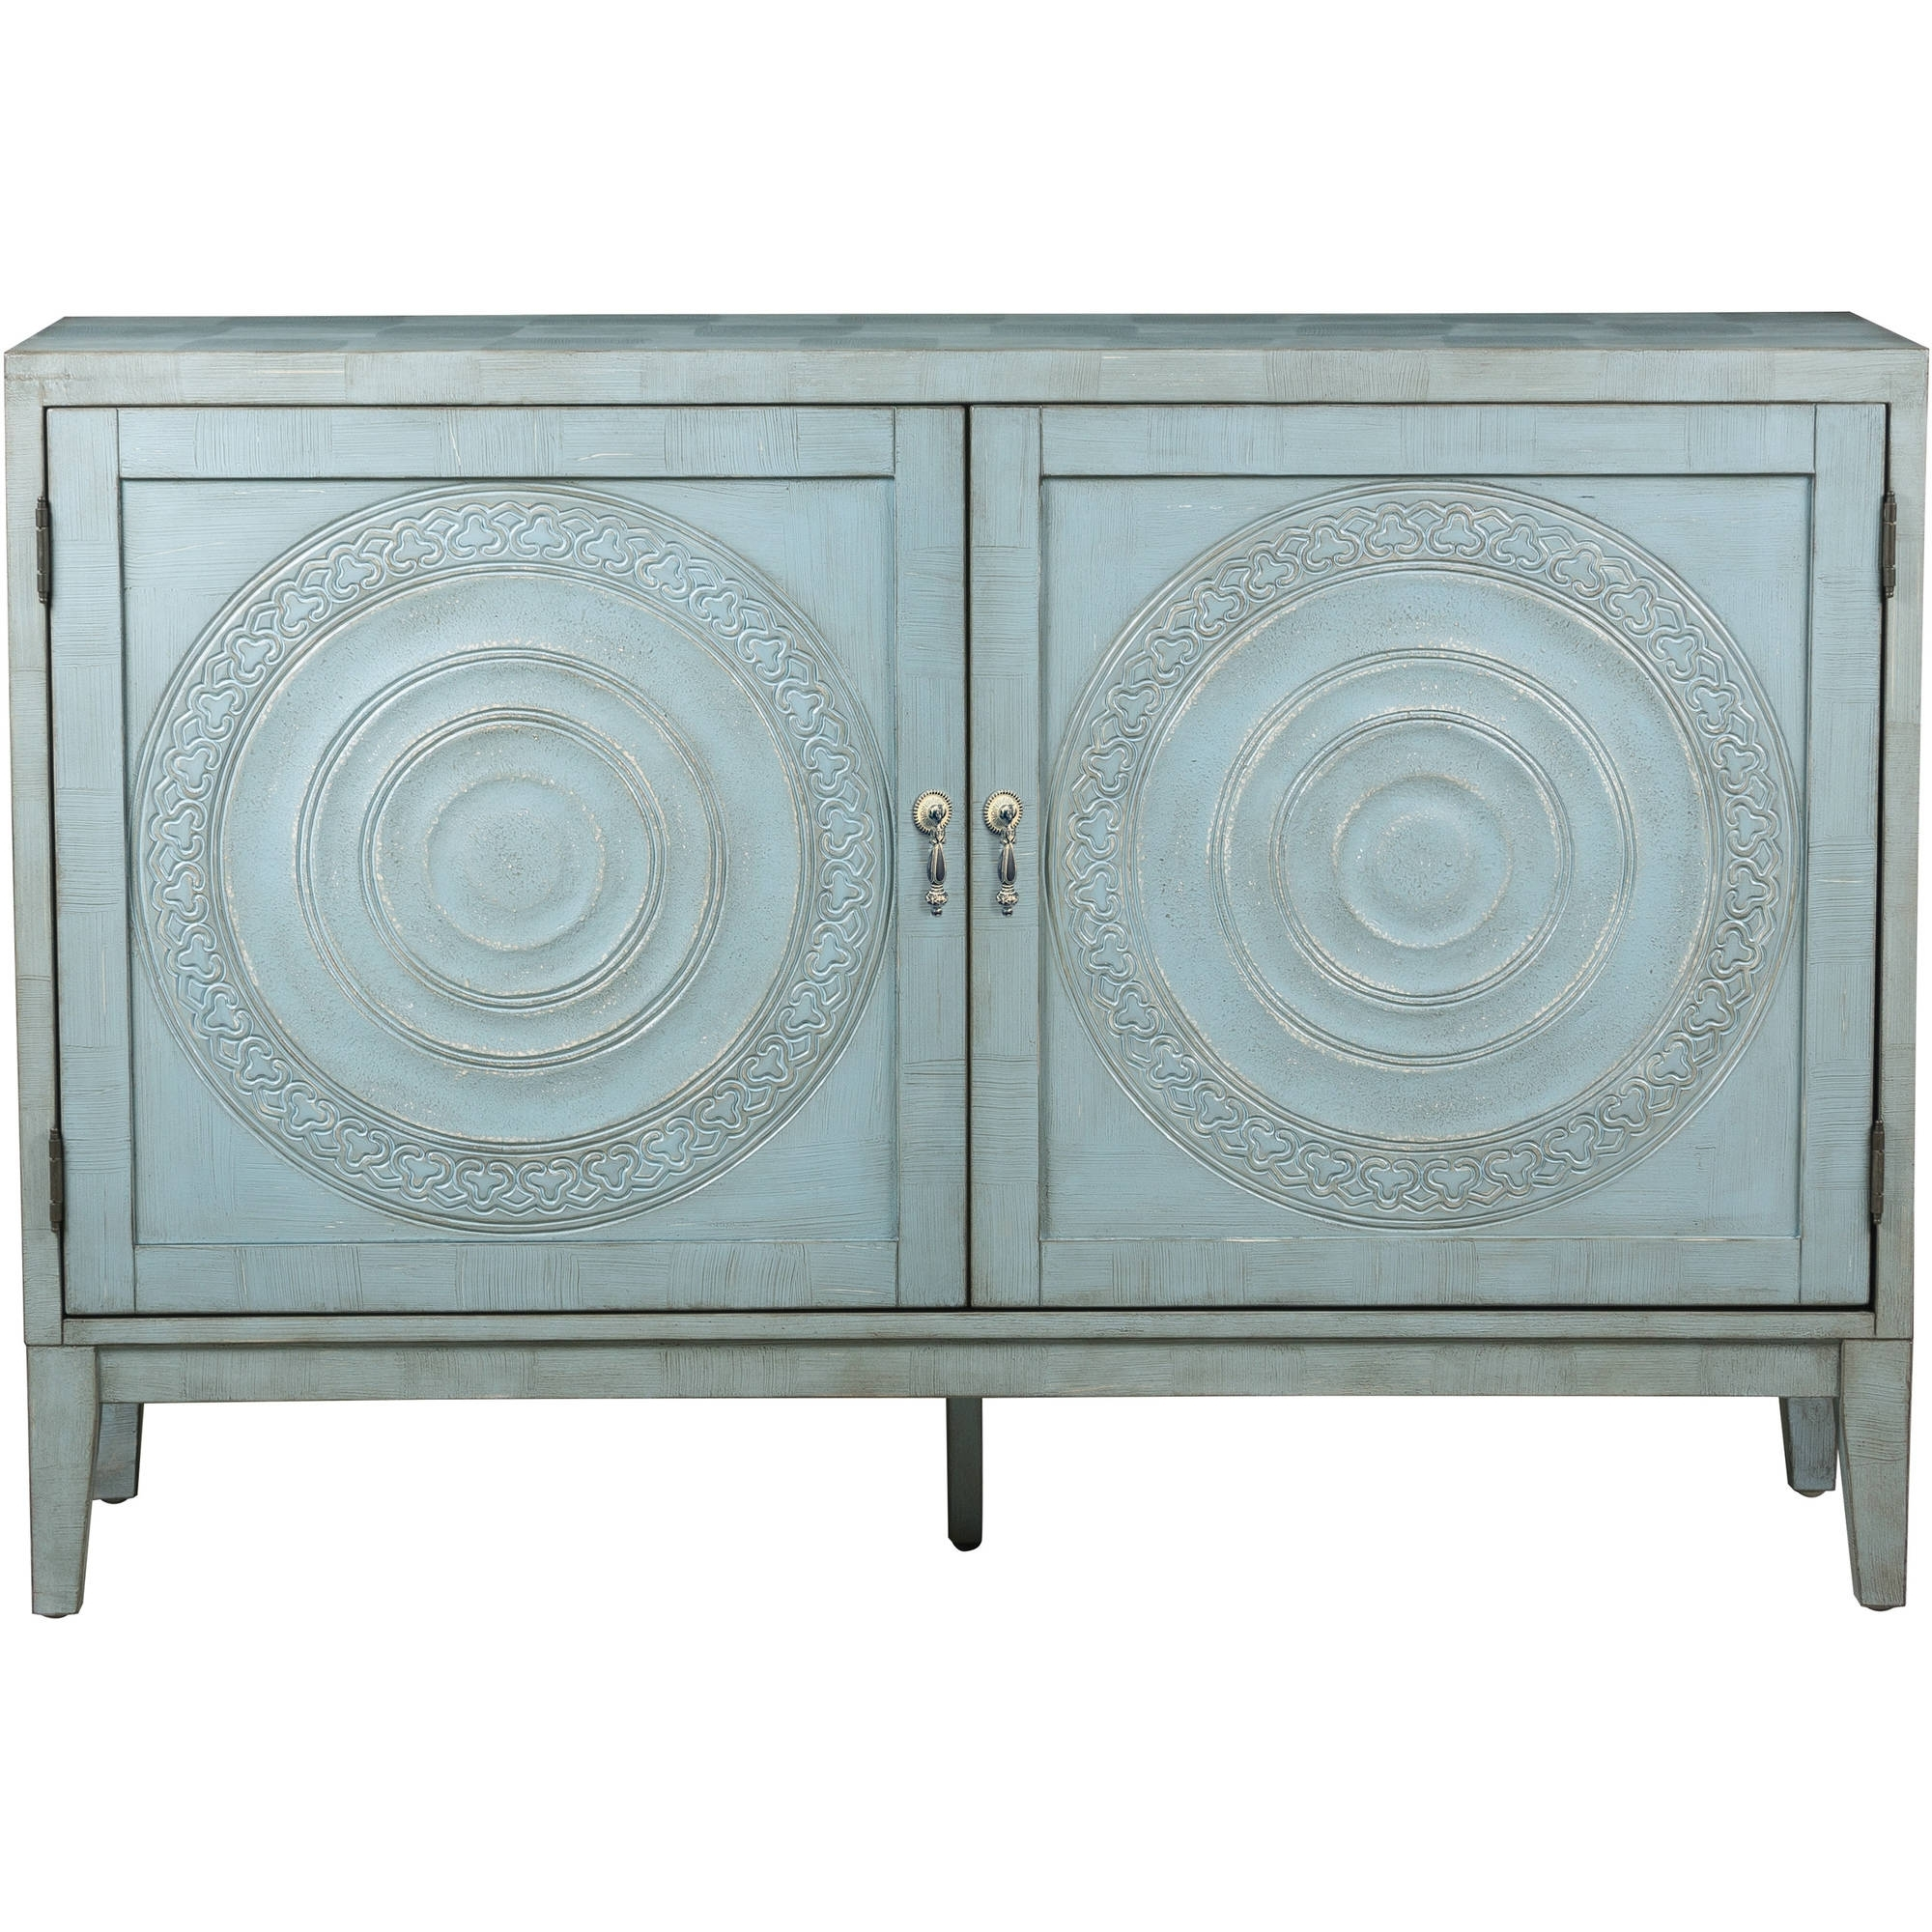 Briane Antique Blue Embossed Door Console - Walmart intended for Oil Pale Finish 4-Door Sideboards (Image 10 of 30)